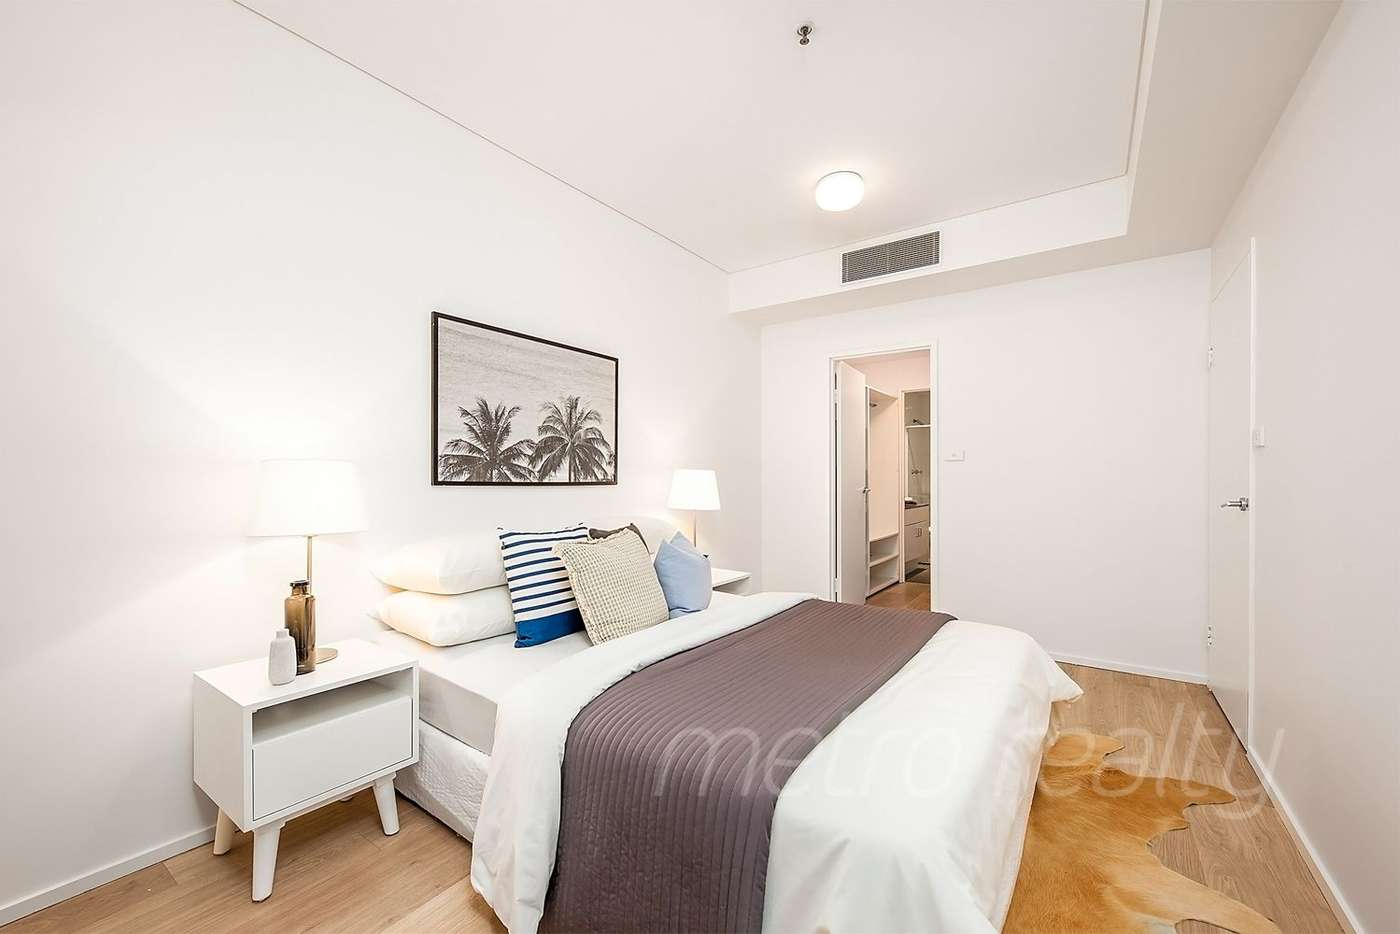 Sixth view of Homely apartment listing, 26/91 Goulburn St, Sydney NSW 2000